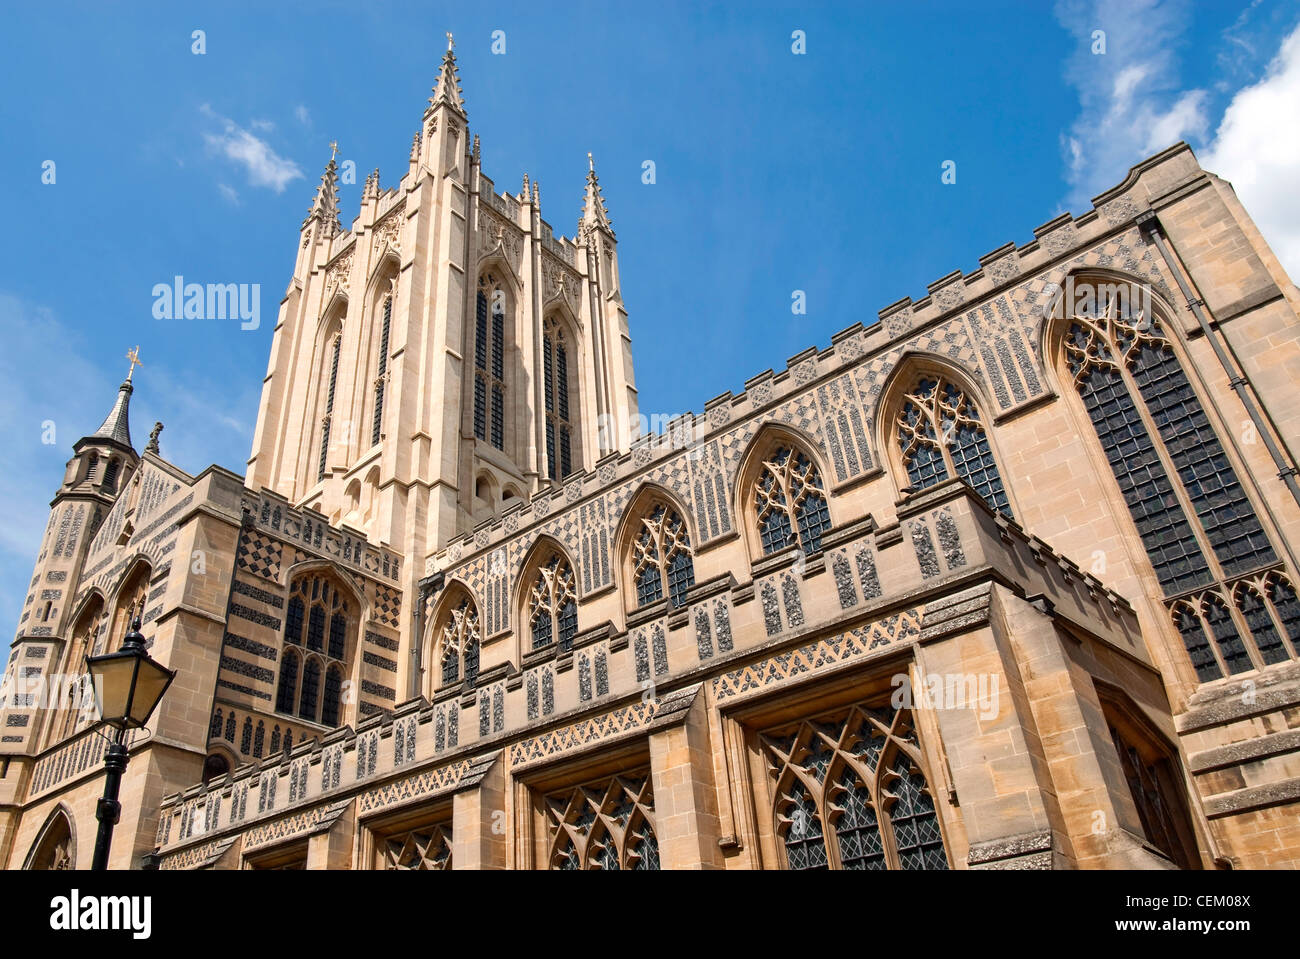 St Edmundsbury Cathedral, the cathedral for the Church of England's Diocese of St Edmundsbury and Ipswich in - Stock Image